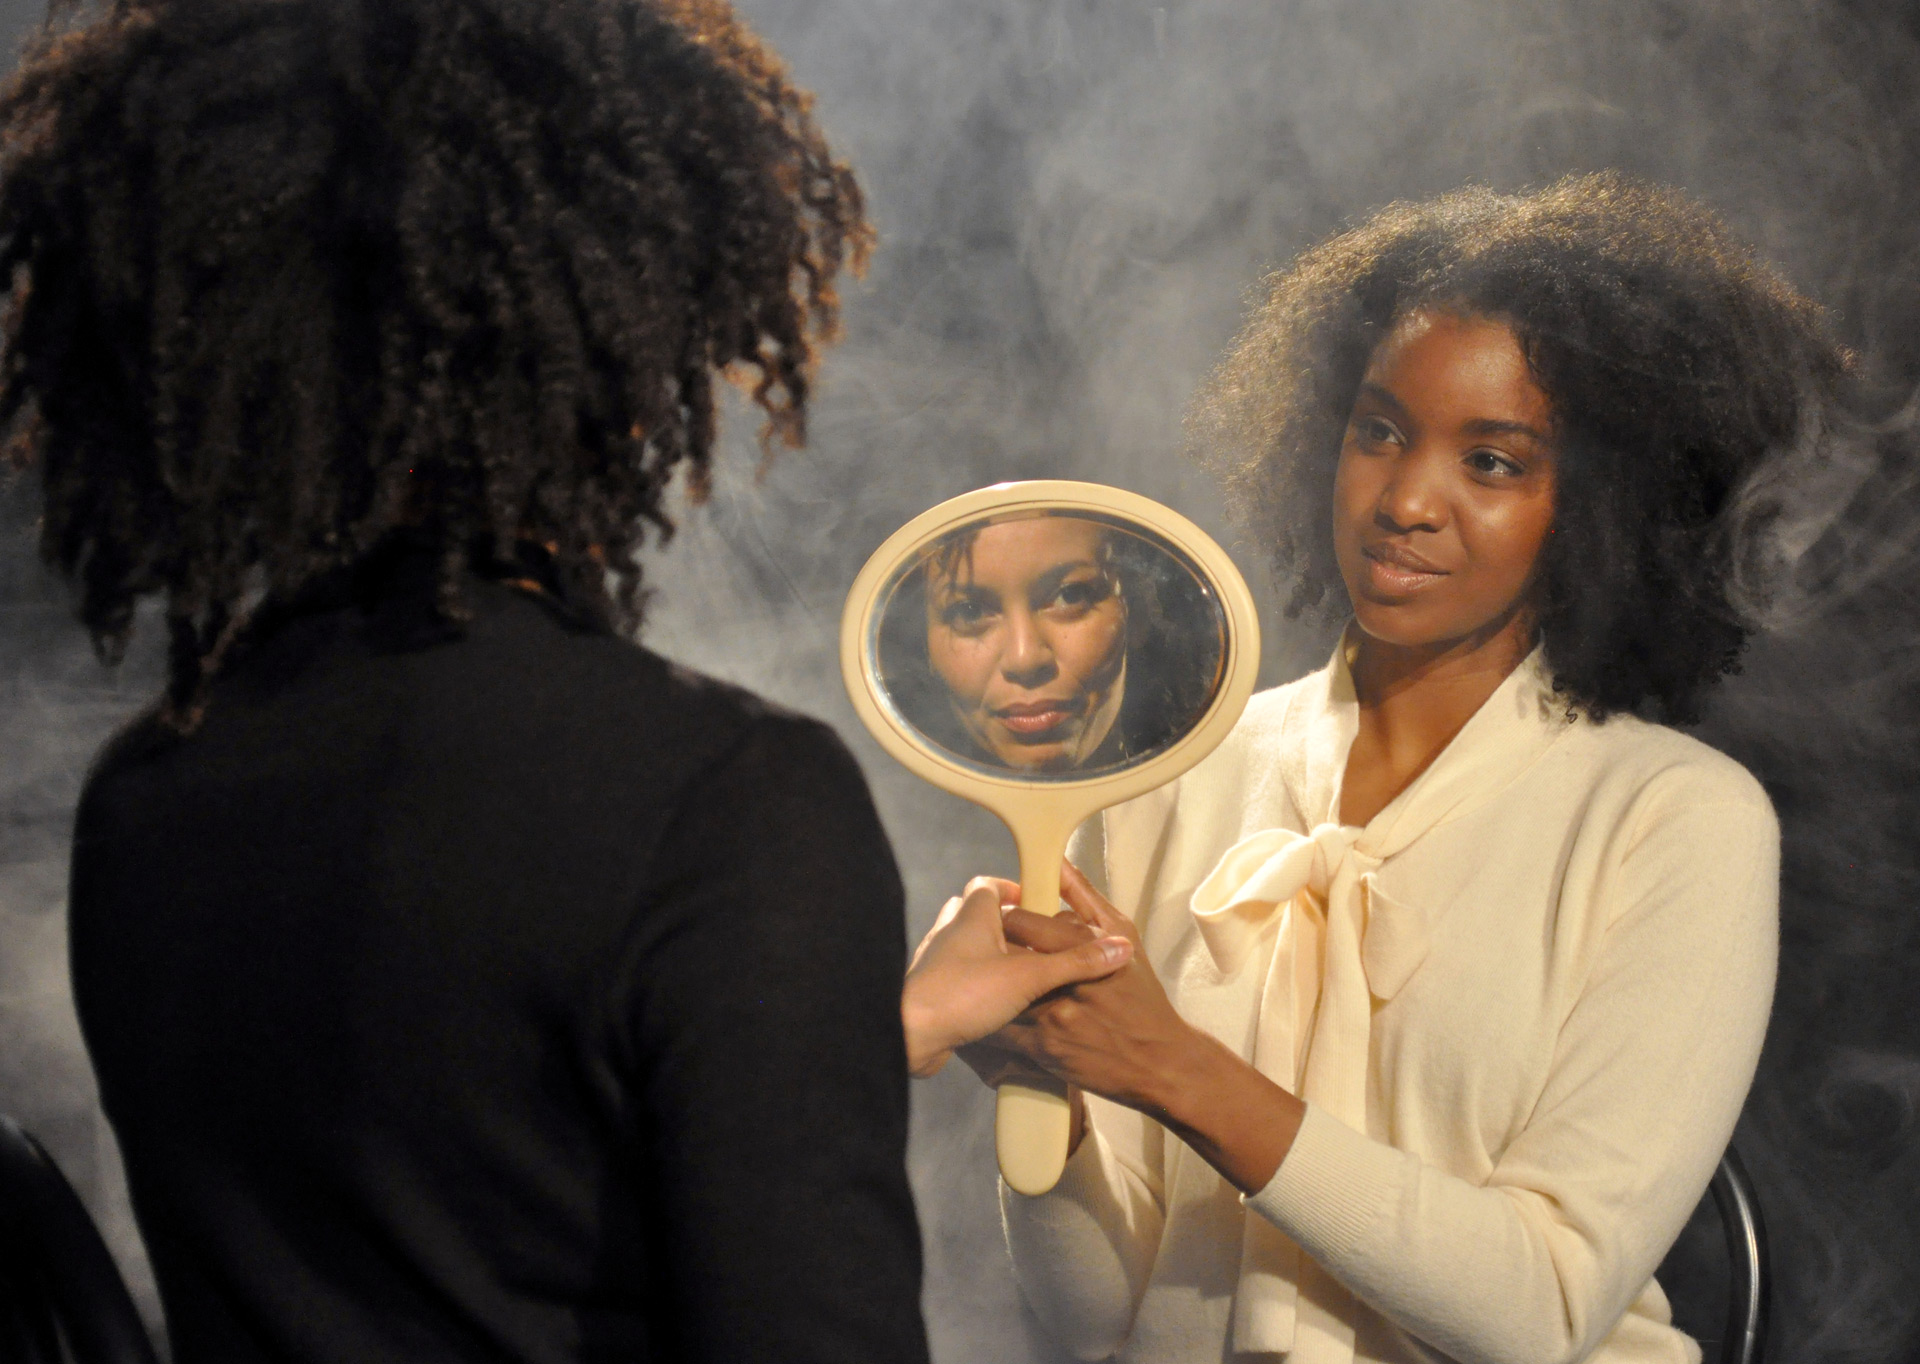 """Carrie Mae Weems, """"The Considered,"""" Courtesy of the artist and Jack Shainman Gallery, New York. ©Carrie Mae Weems  Above: Photograph by Brielmaier's husband,Mangue Banzima."""